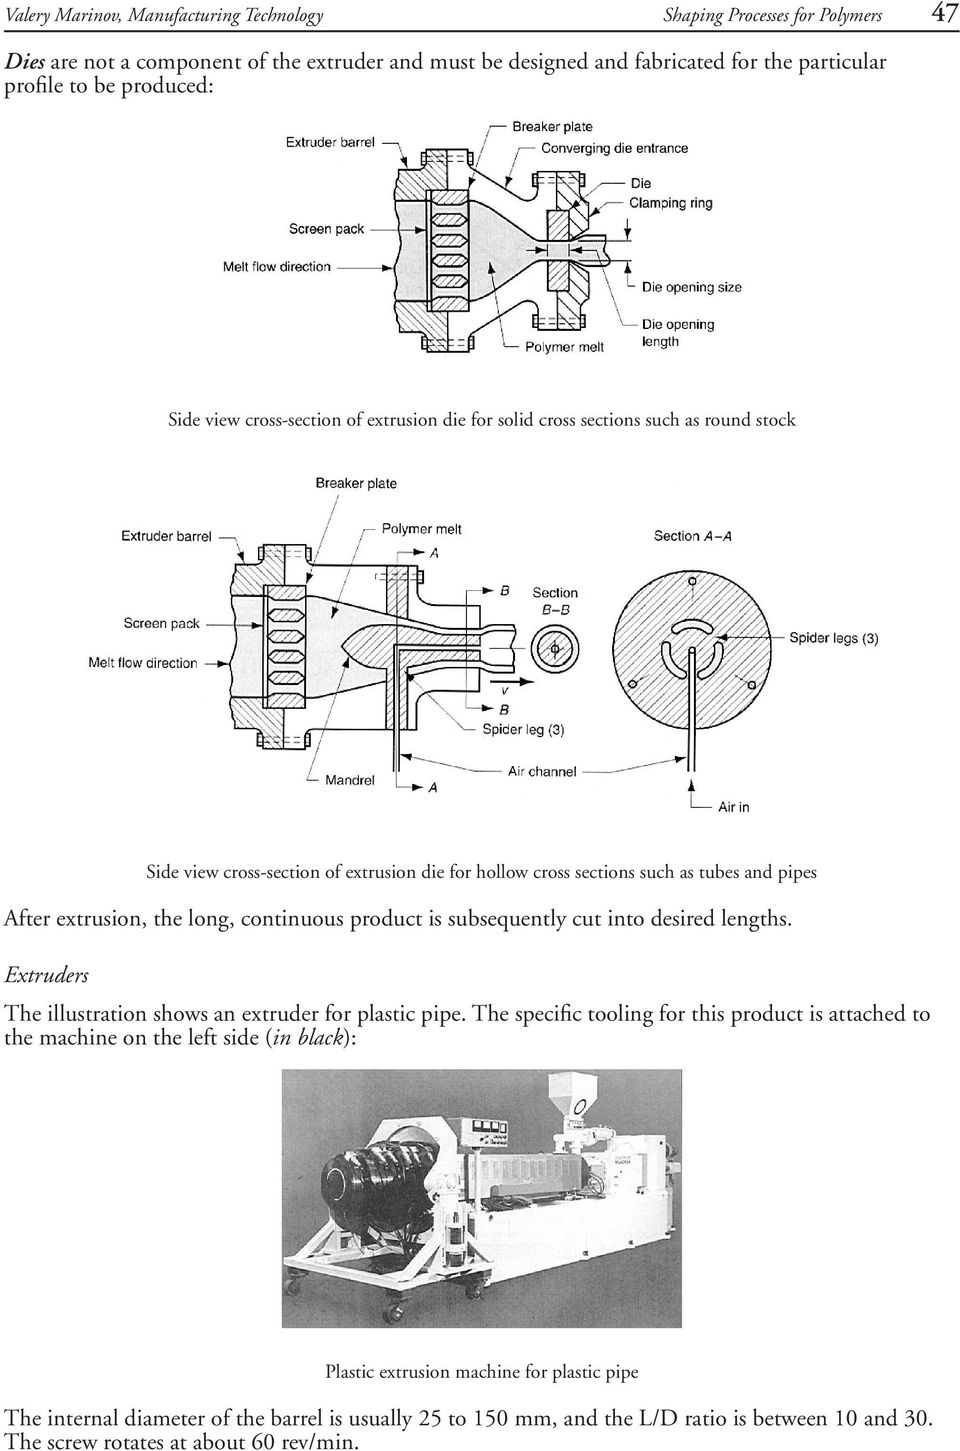 the long, continuous product is subsequently cut into desired lengths. The illustration shows an extruder for plastic pipe.